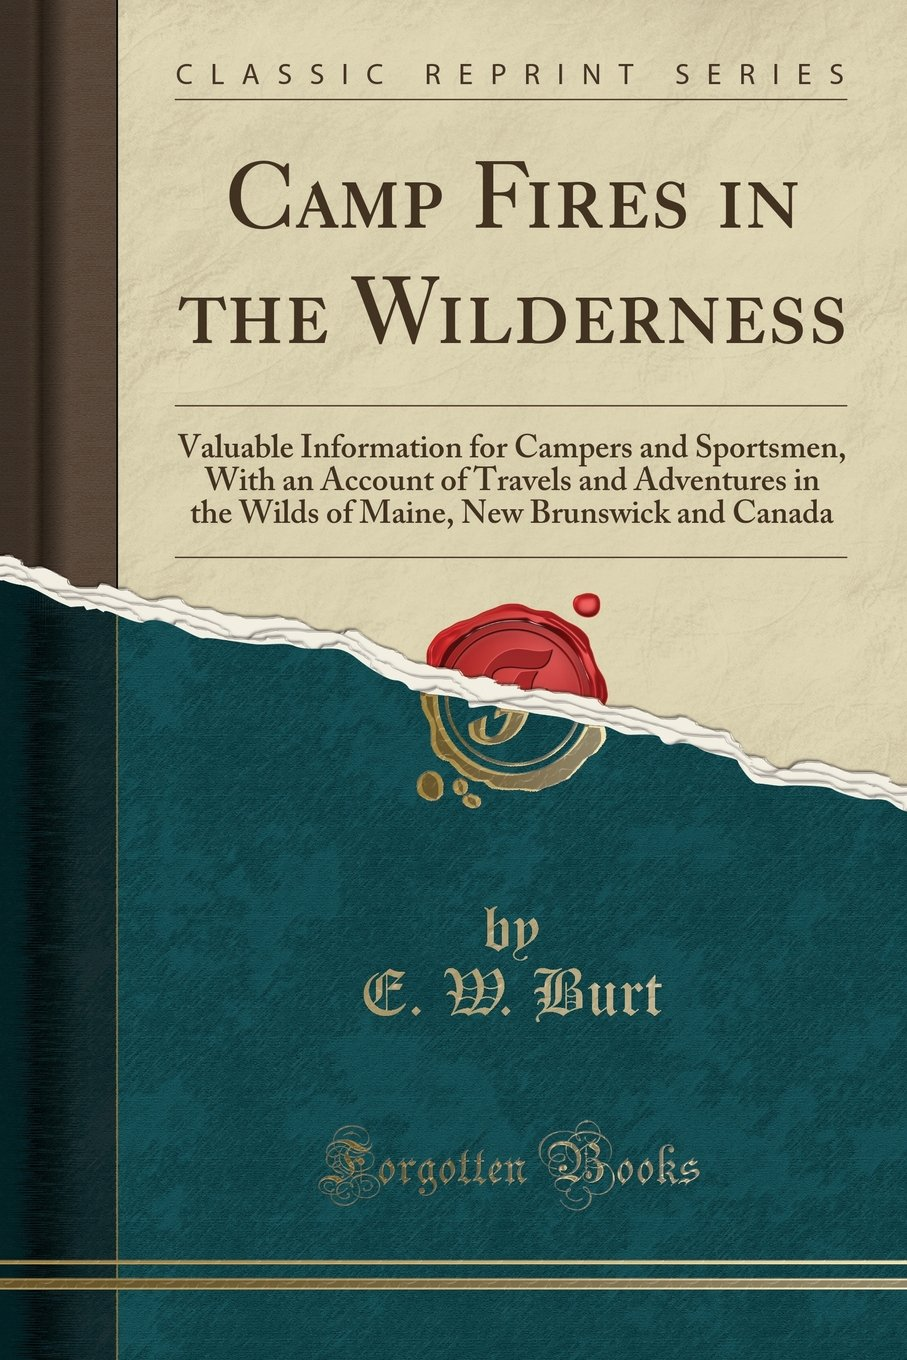 Camp Fires in the Wilderness: Valuable Information for Campers and Sportsmen, With an Account of Travels and Adventures in the Wilds of Maine, New Brunswick and Canada (Classic Reprint) pdf